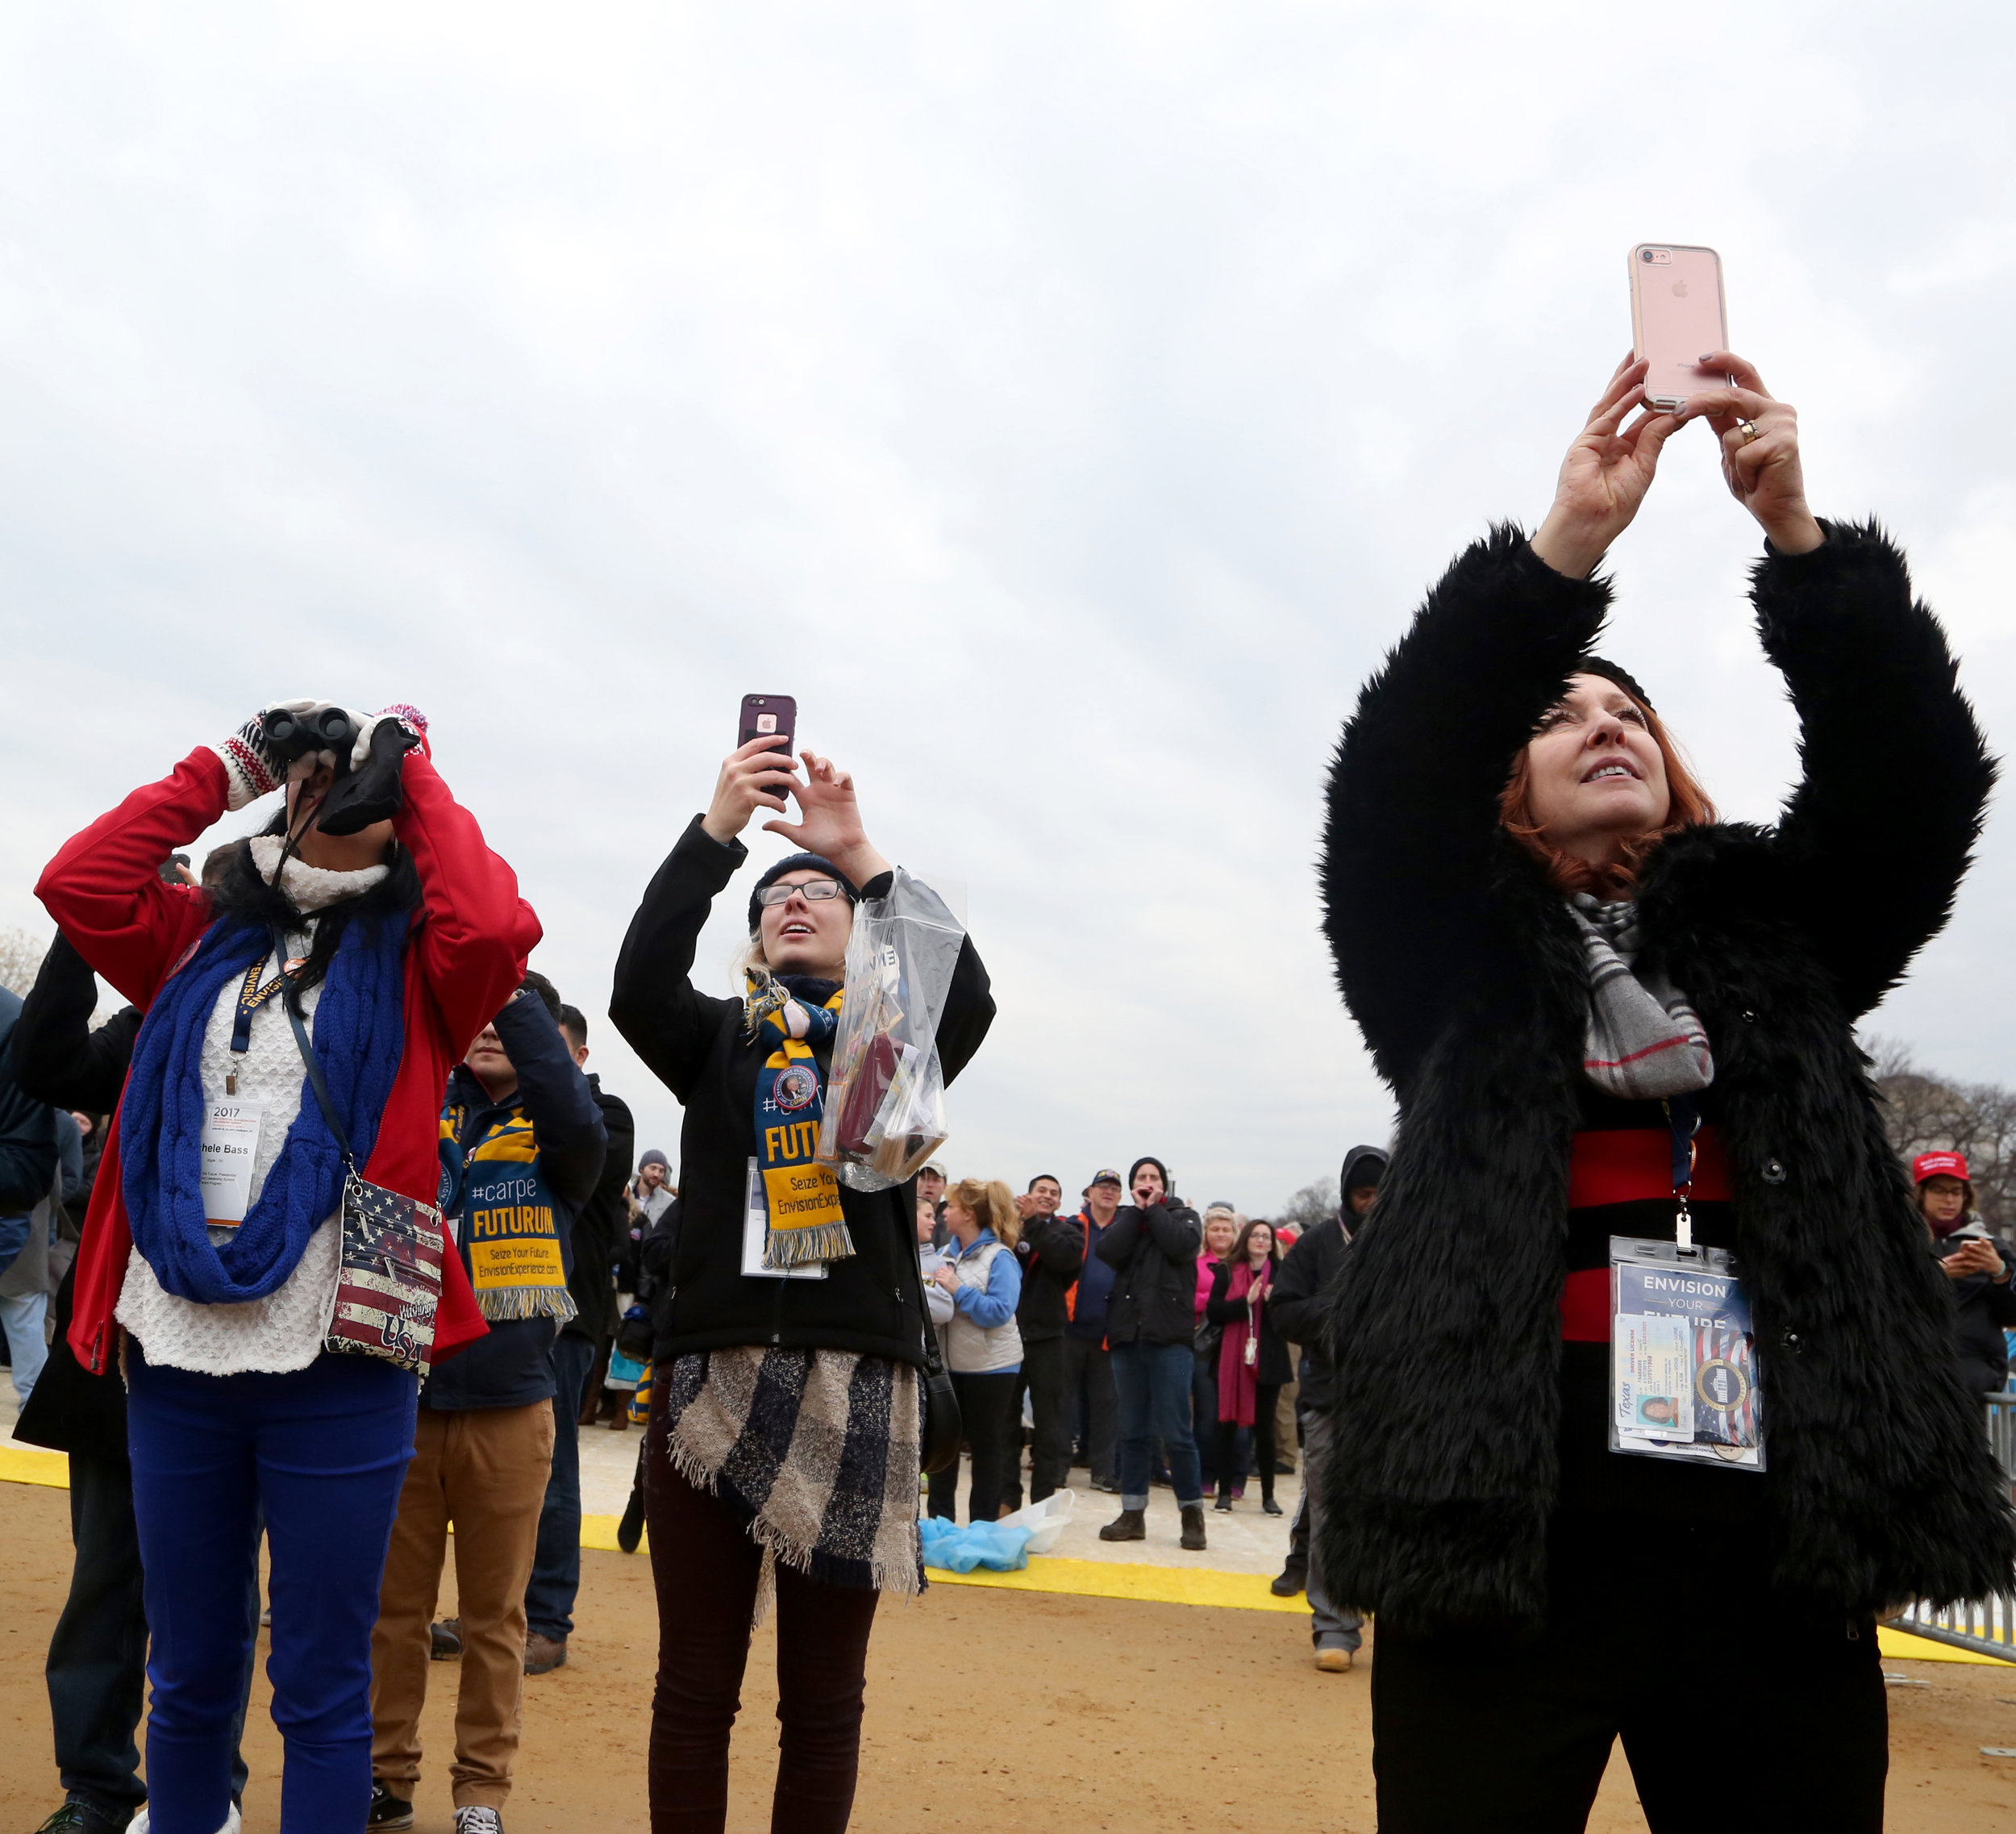 6_inauguration_caitlinfaw_cellphones.jpg